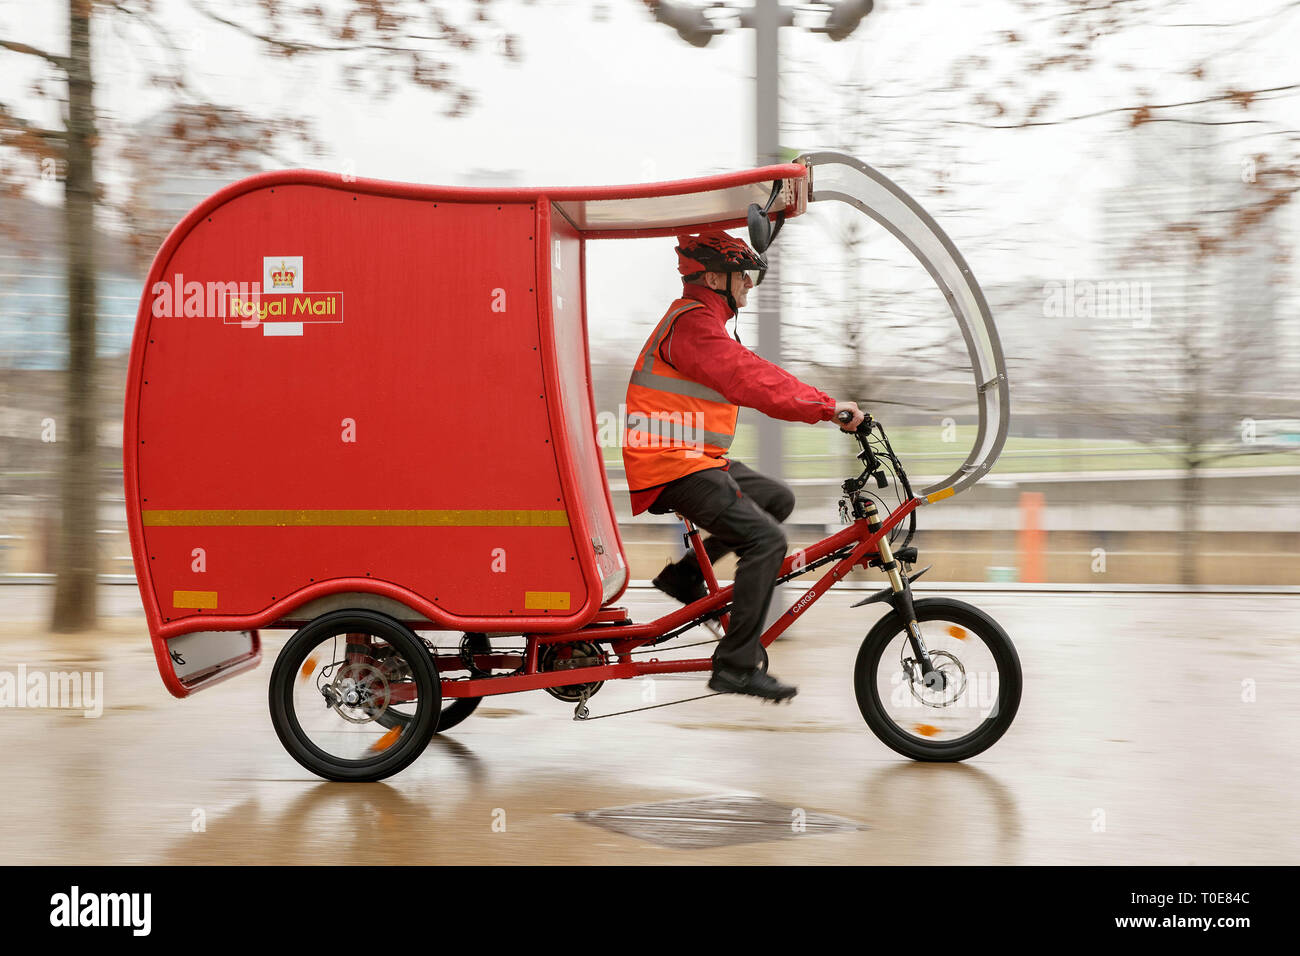 EDITORIAL USE ONLY Postman Nigel Roughty rides at the unveiling of the zero-carbon emission e-Trikes, which are predominantly powered by a combination of solar, battery and brake technology, and will be trialled by Royal Mail in Stratford in east London, Cambridge and Sutton Coldfield at the end of the month. - Stock Image